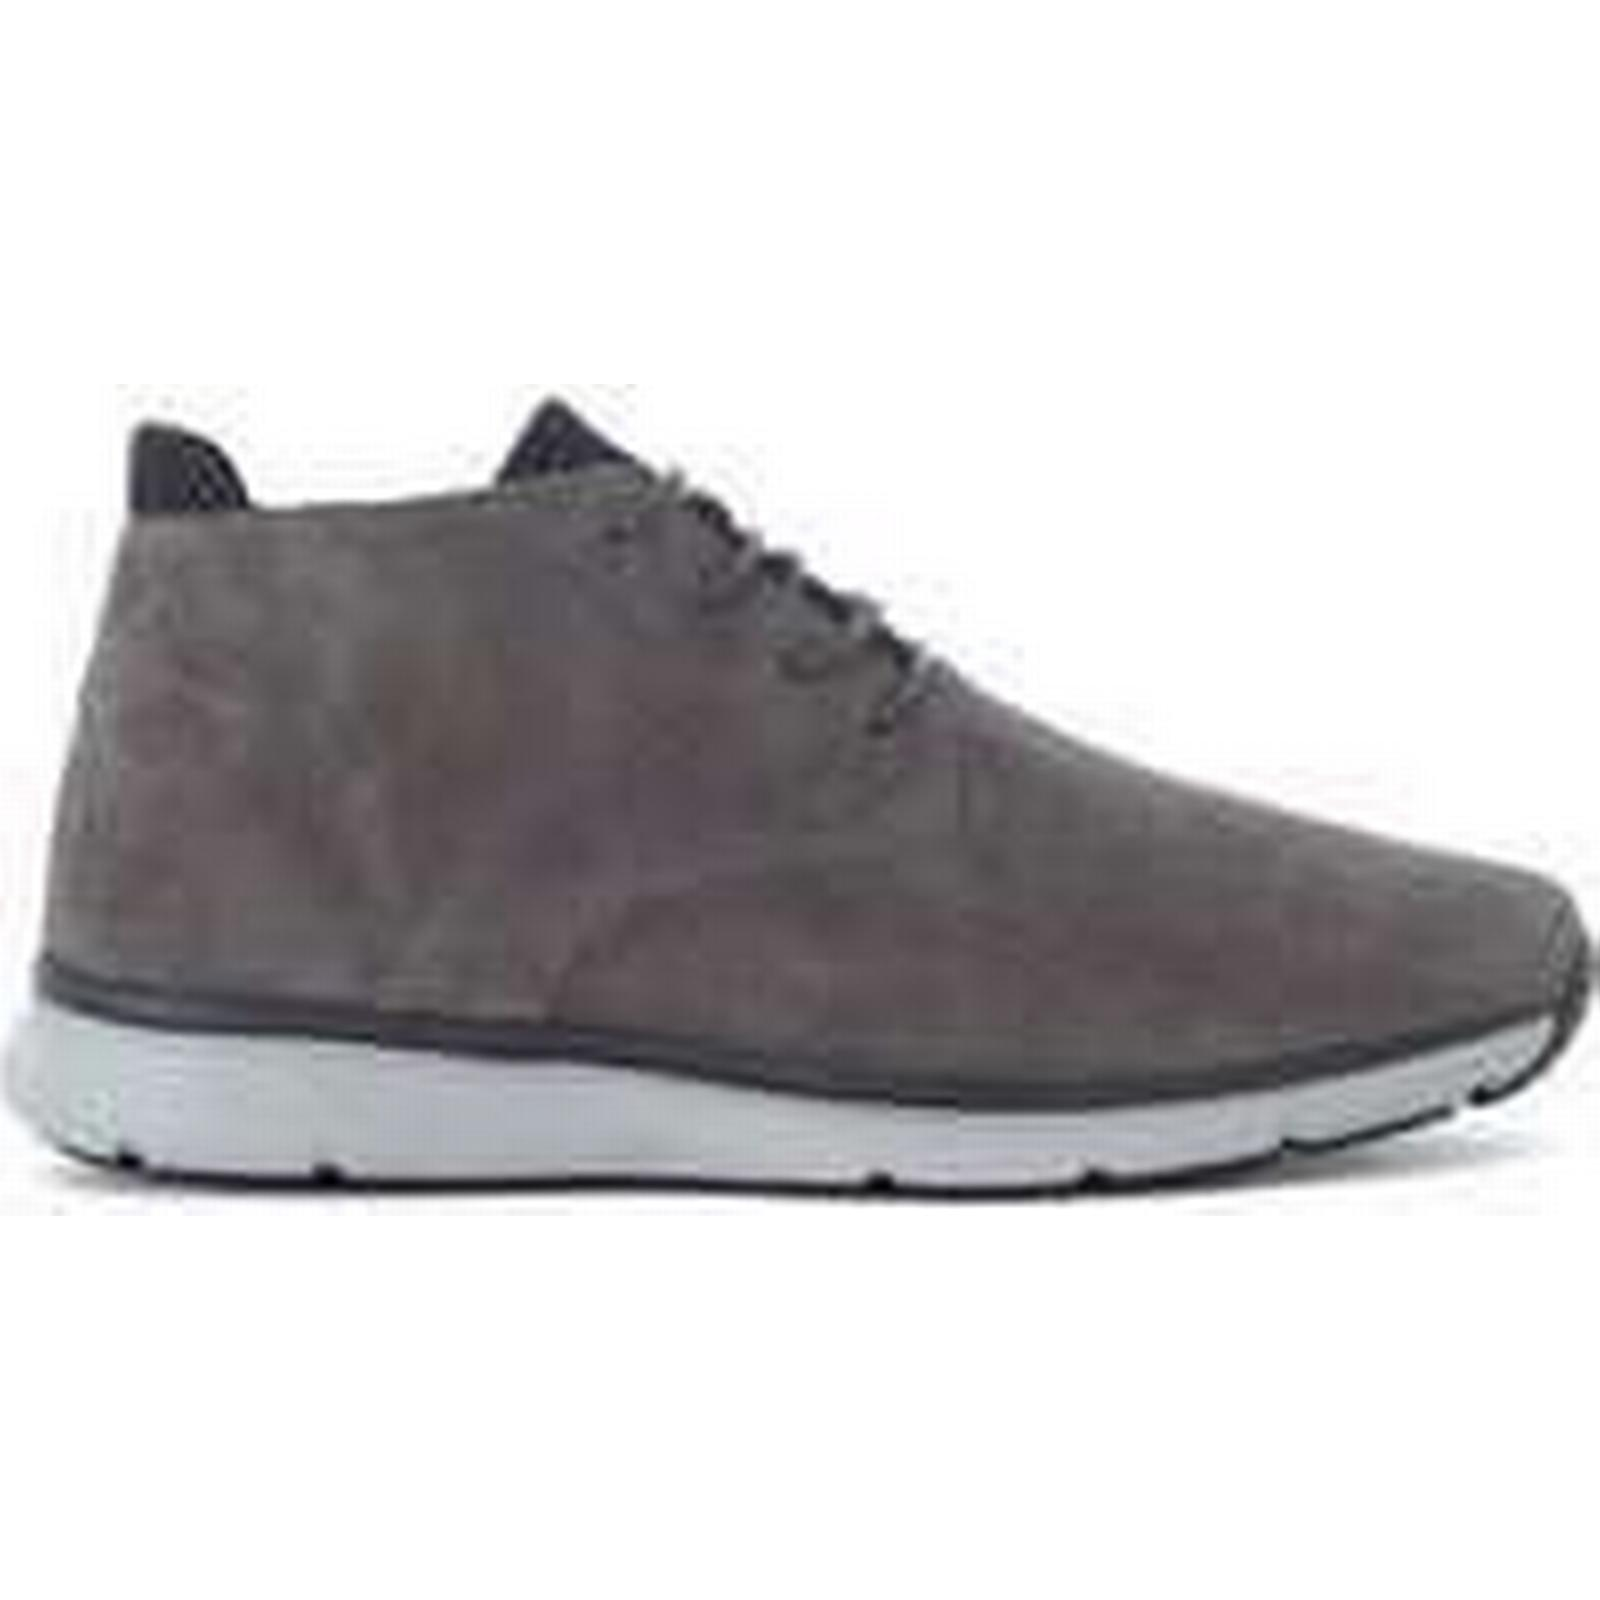 Spartoo.co.uk Hogan New Urban Style grey (Trainers) nabuk sneaker men's Shoes (Trainers) grey in Grey 7605be